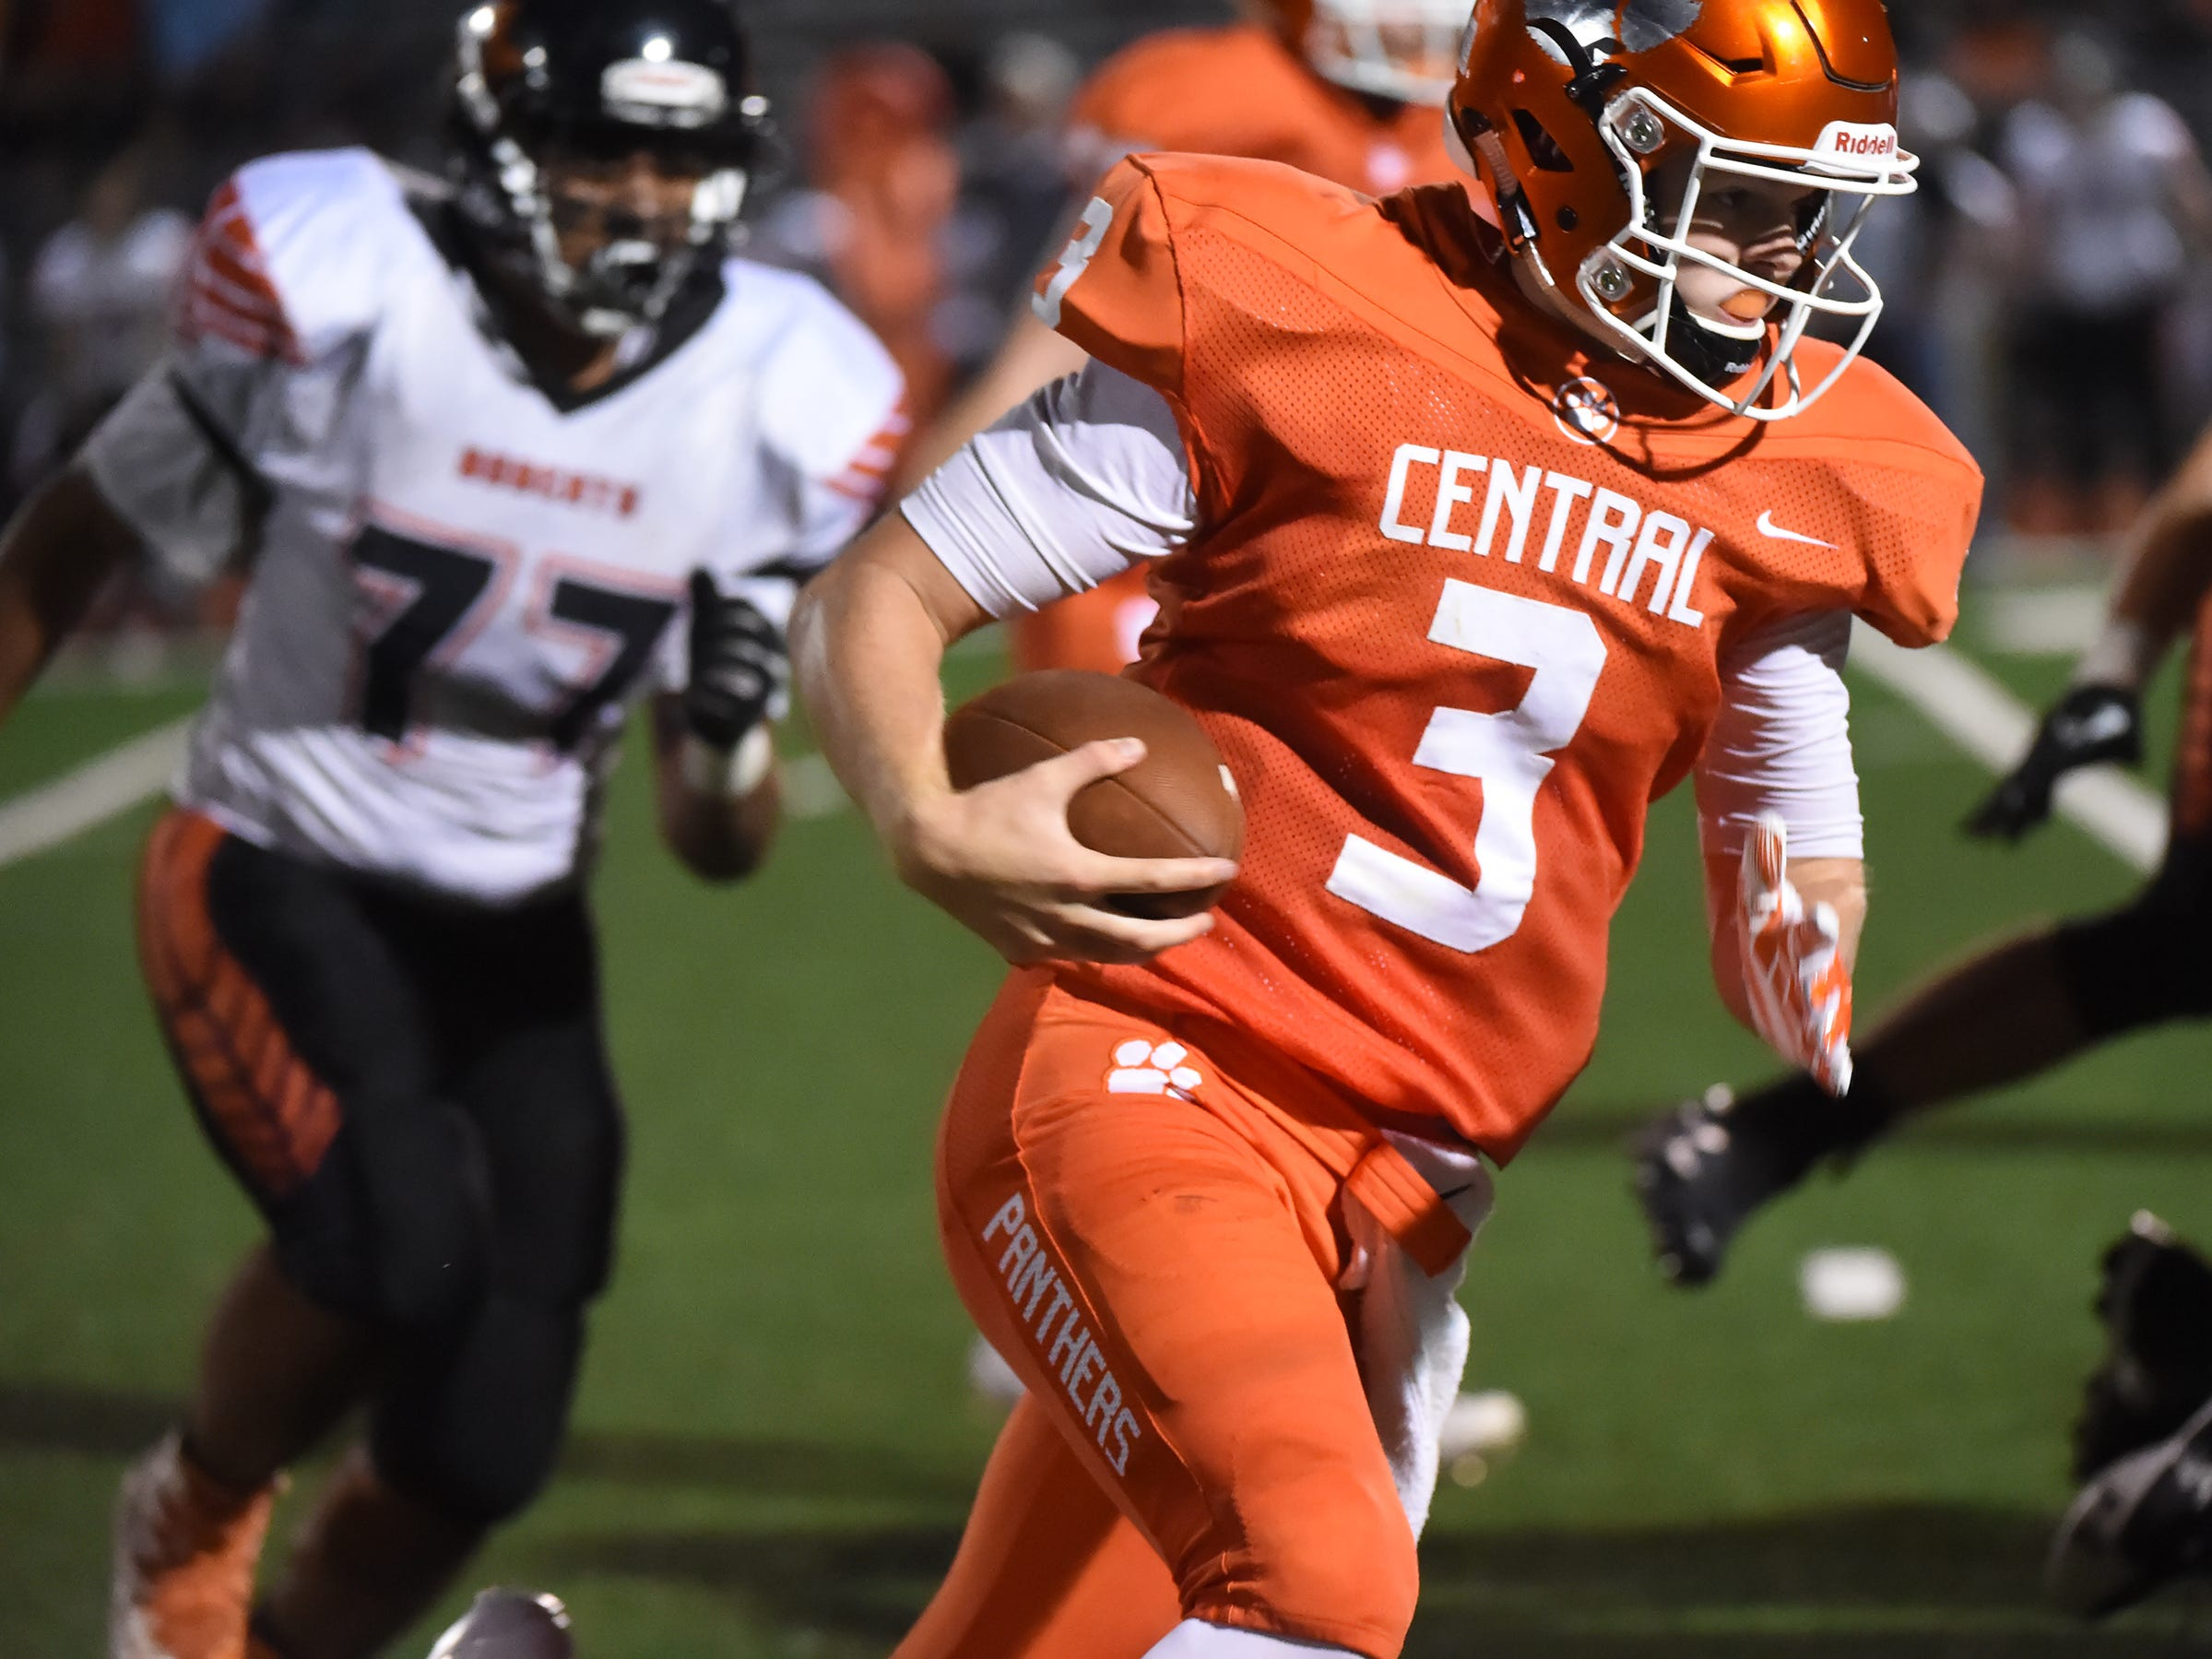 Central York QB Cade Pribula cuts to the outside during the Panthers' game against Northeastern High School on Friday, Sept. 22, 2017.